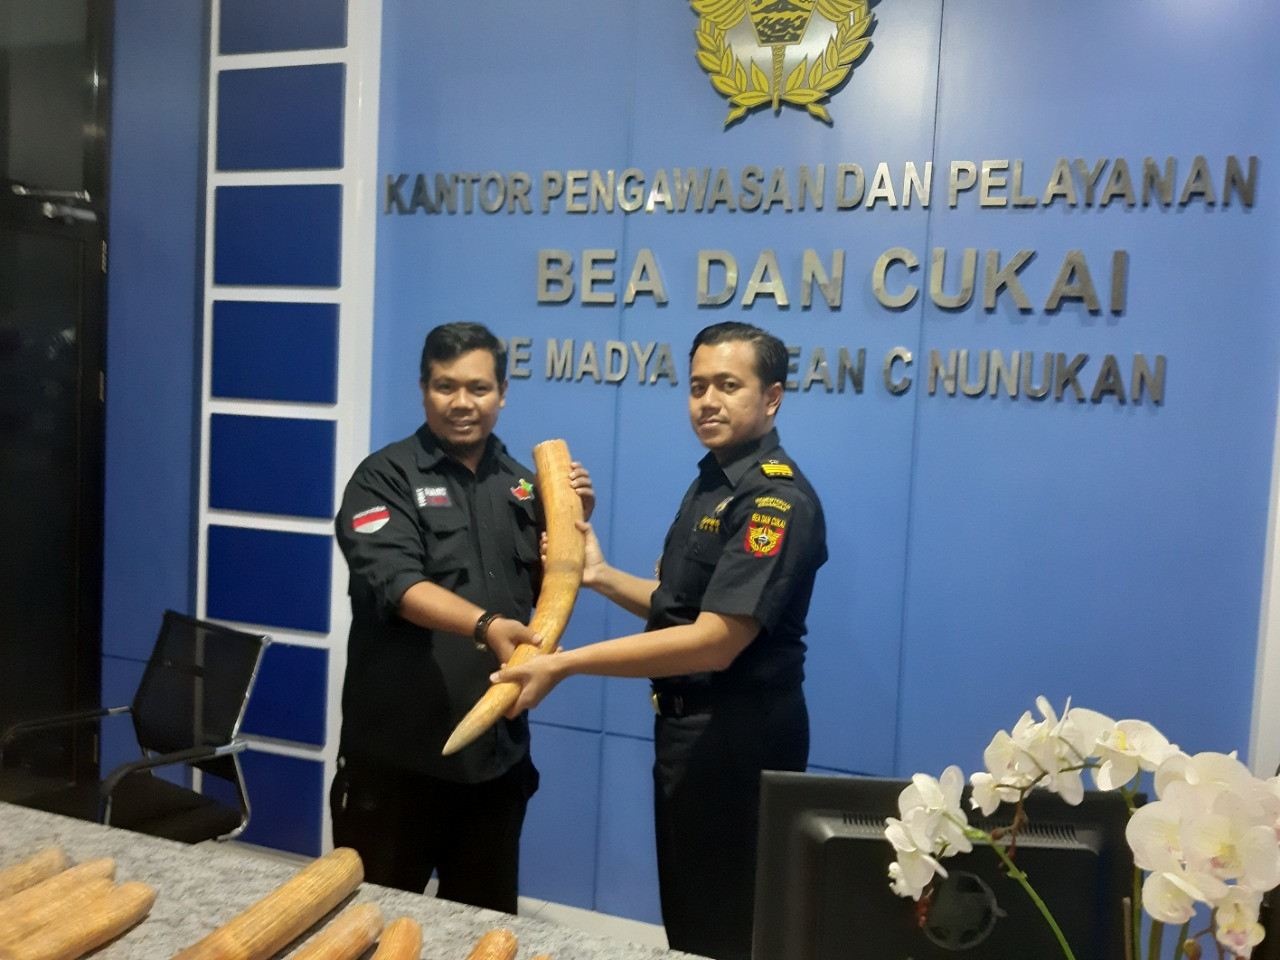 Man arrested for trying to smuggle elephant tusks from Malaysia